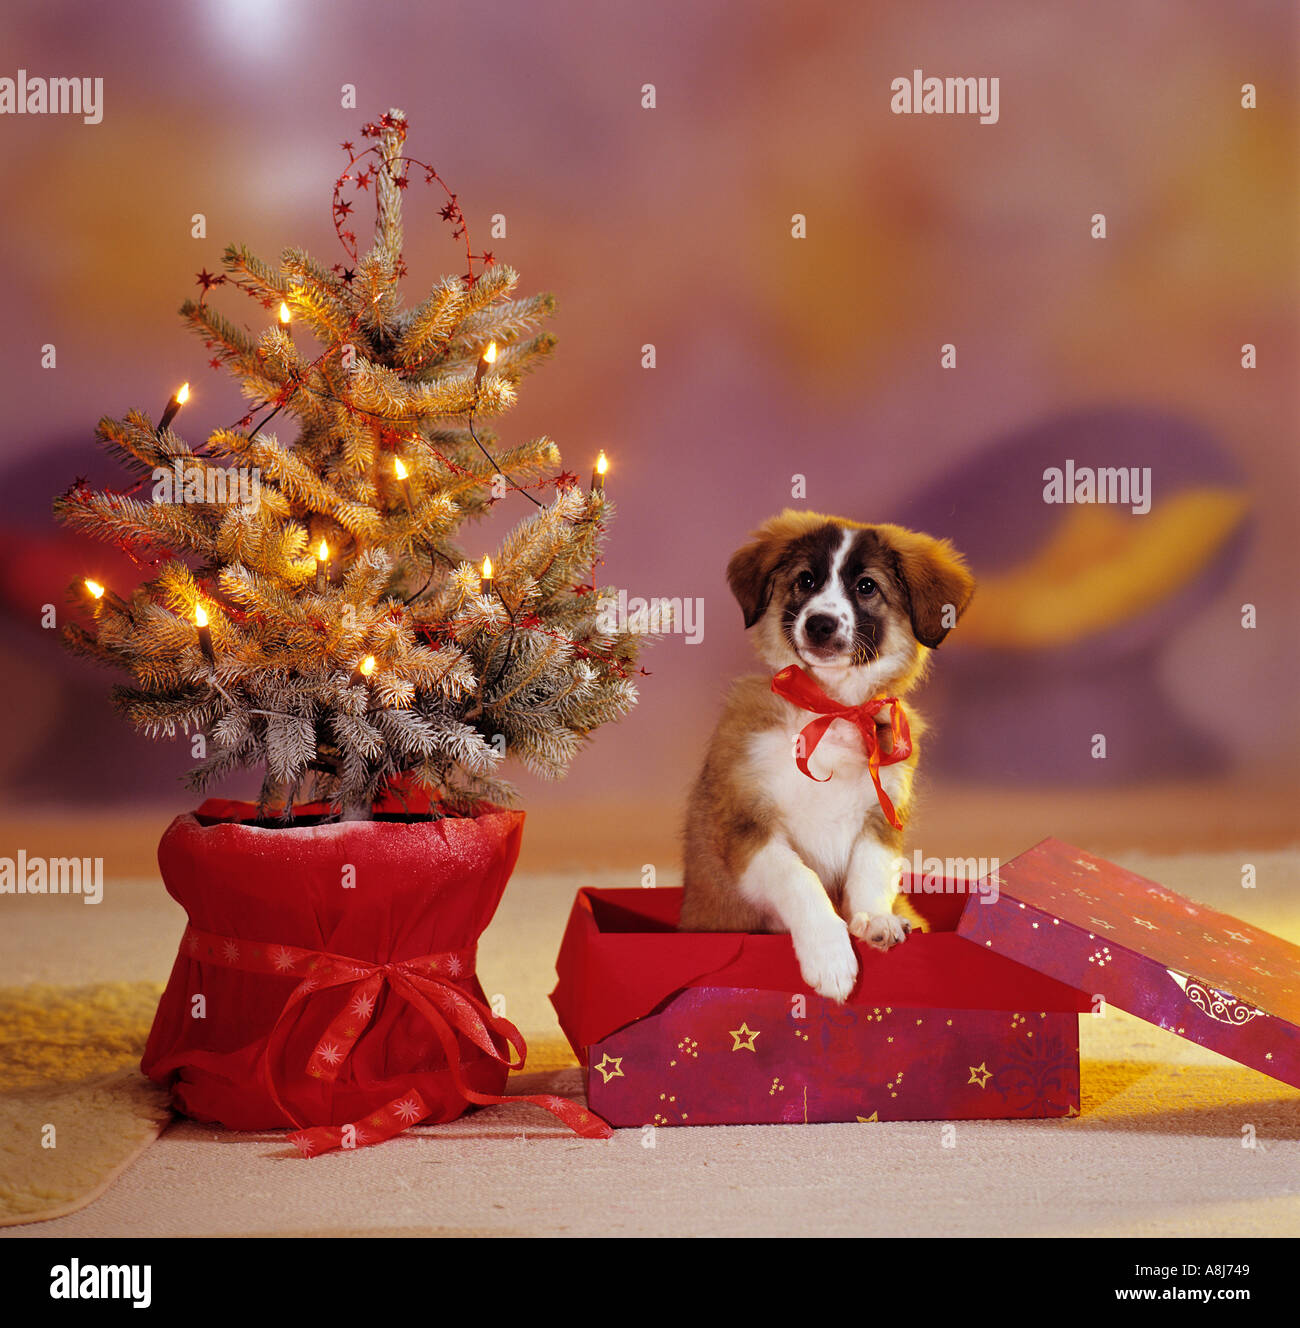 Until Christmas 10 Weeks Till Christmas.Half Breed Dog Puppy 10 Weeks In Box Next To Christmas Tree